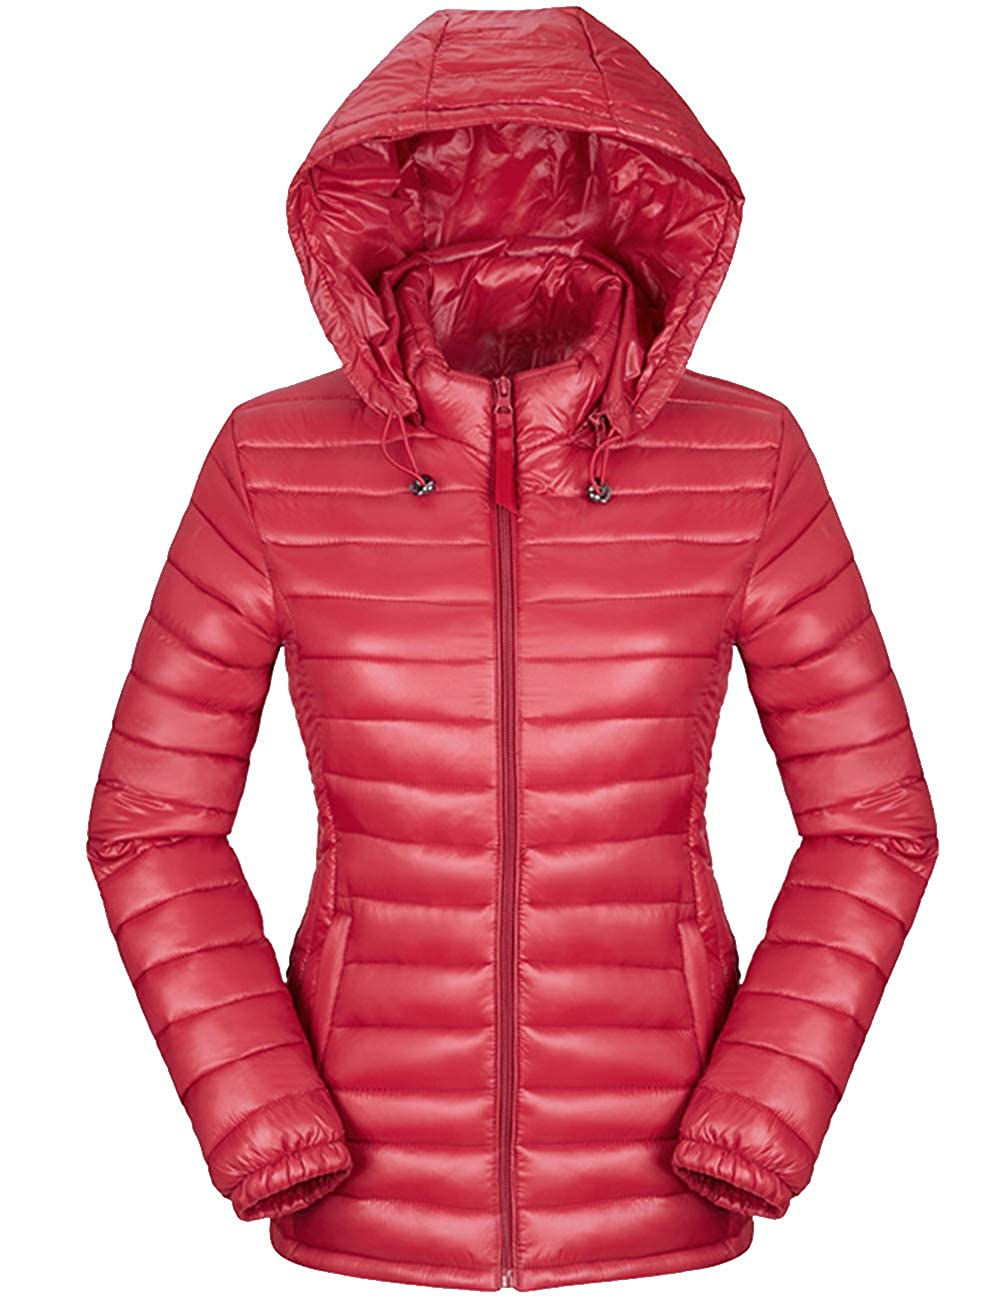 SOMTHRON Women Winter Thermal Hooded Puffer Jacket Light Packable Outdoor Down Jacket